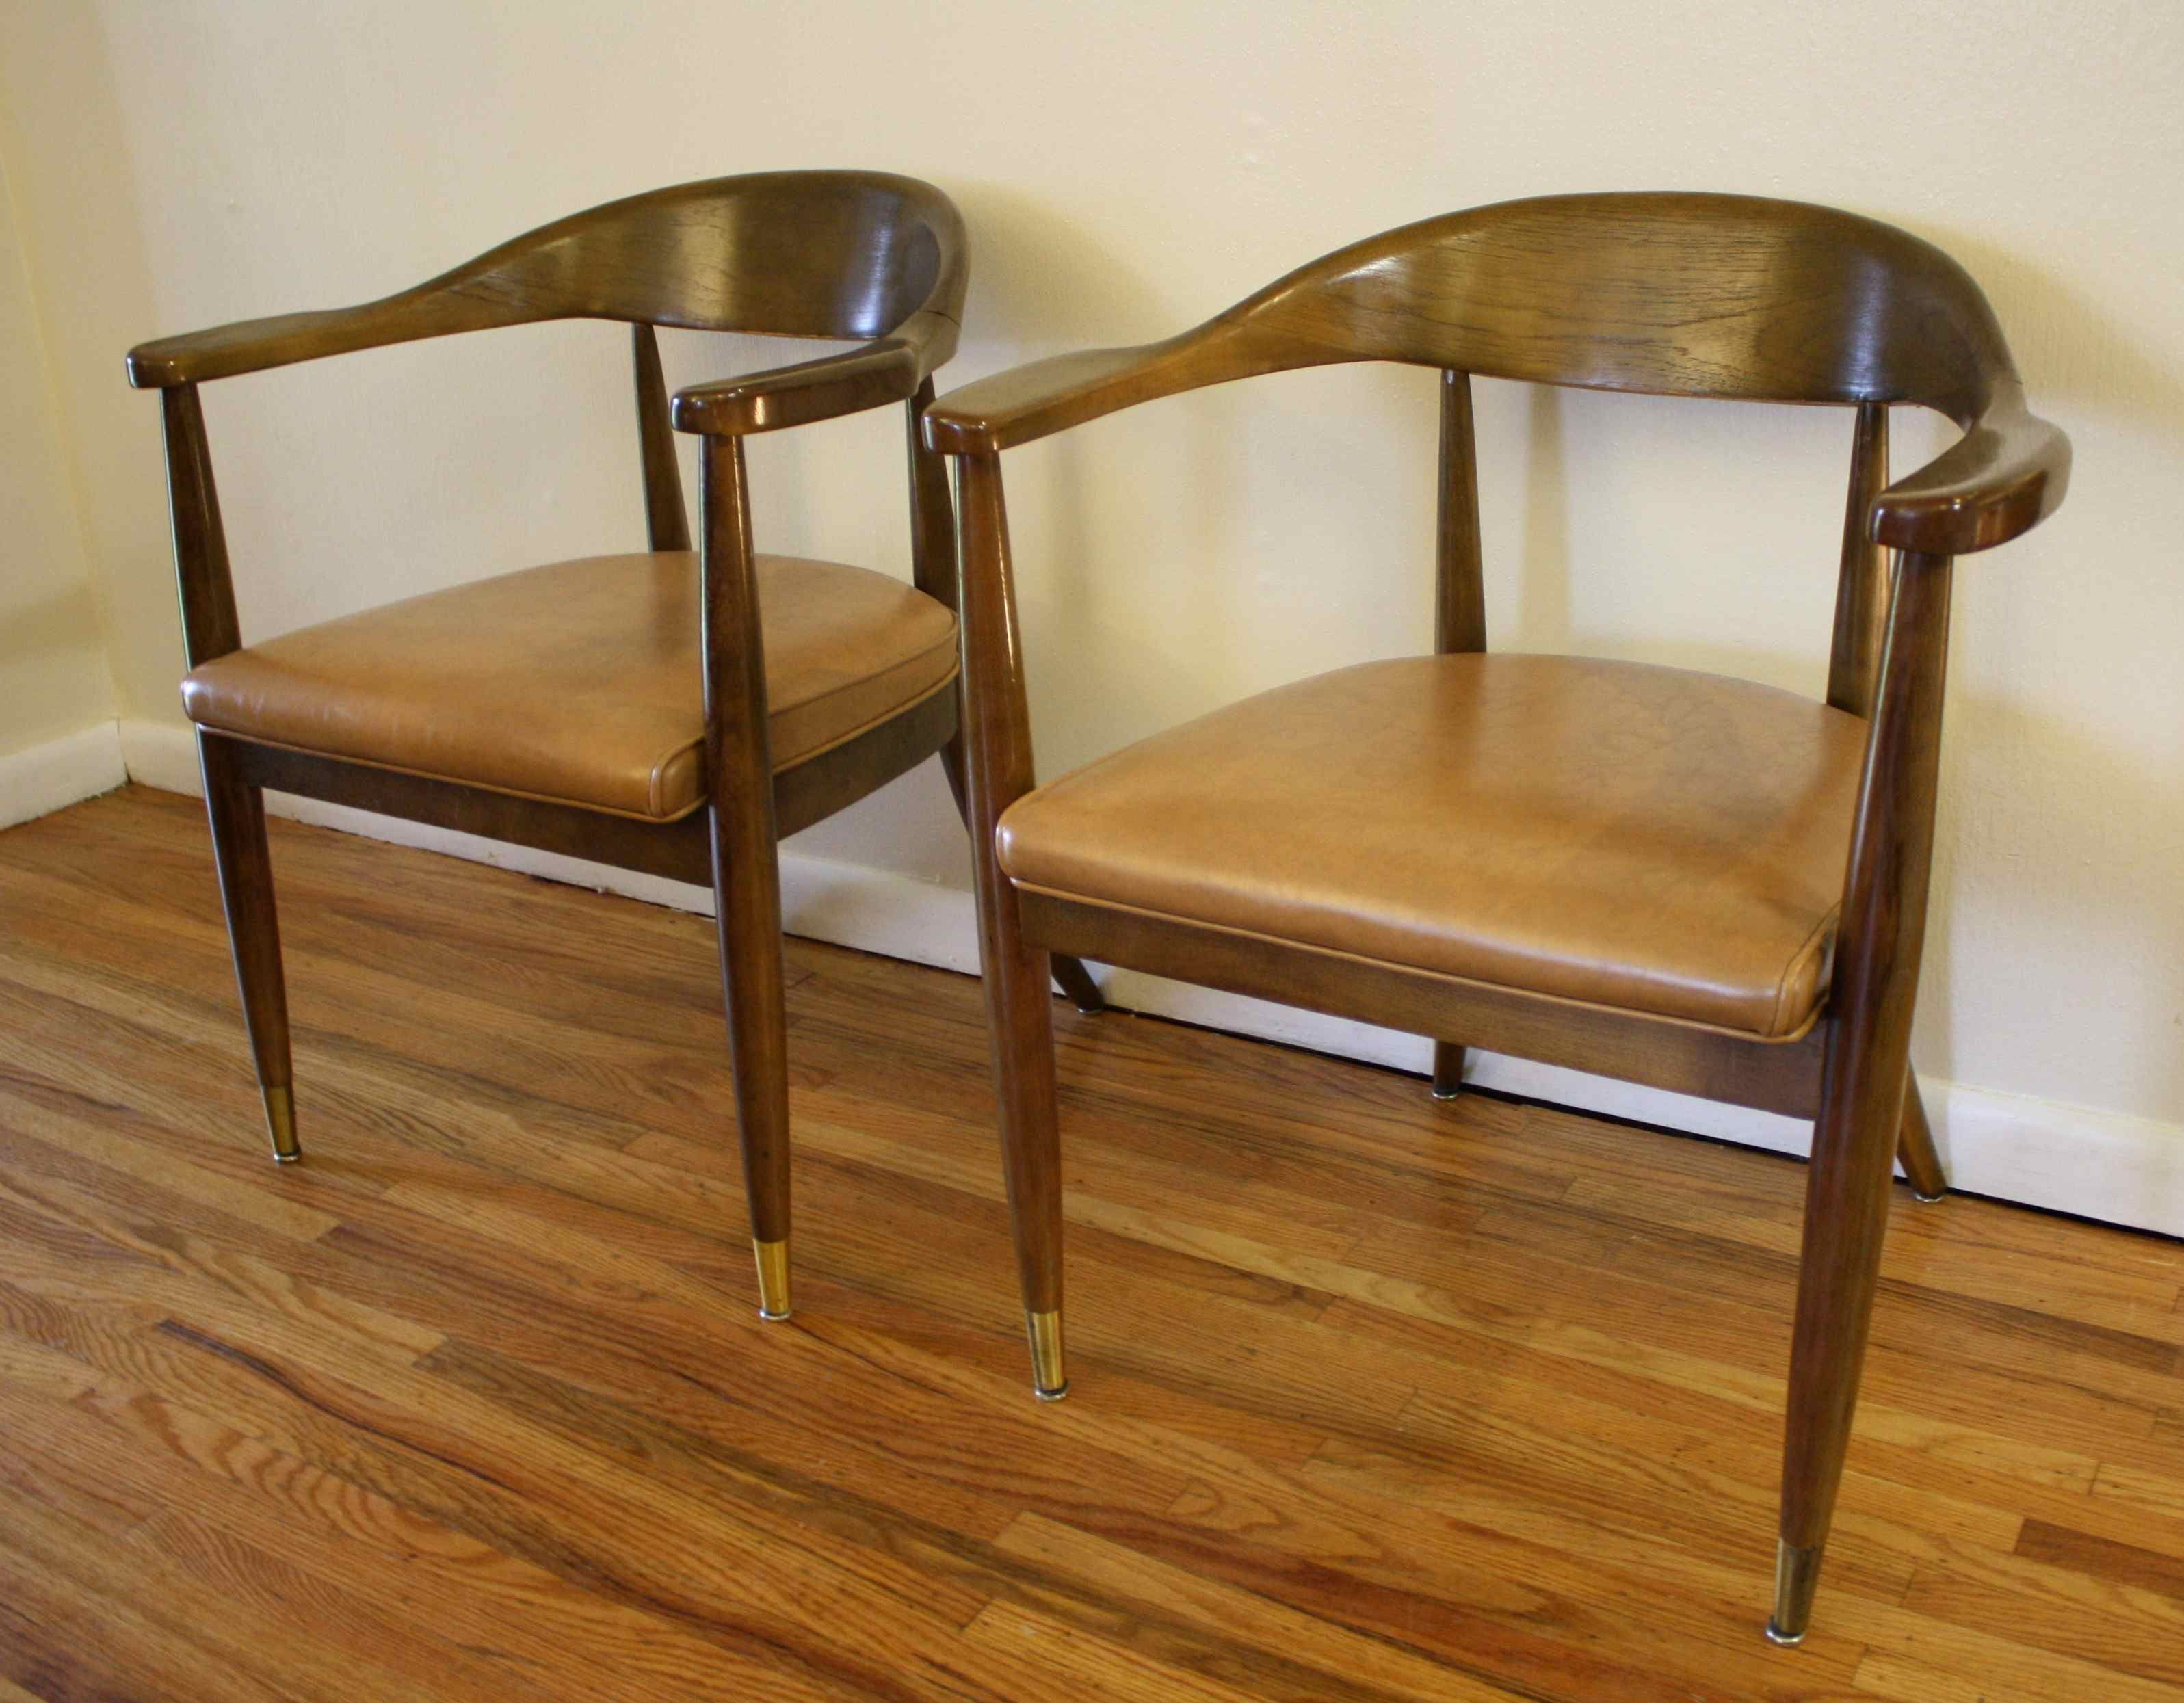 Image result for mid century chair inexpensive mid